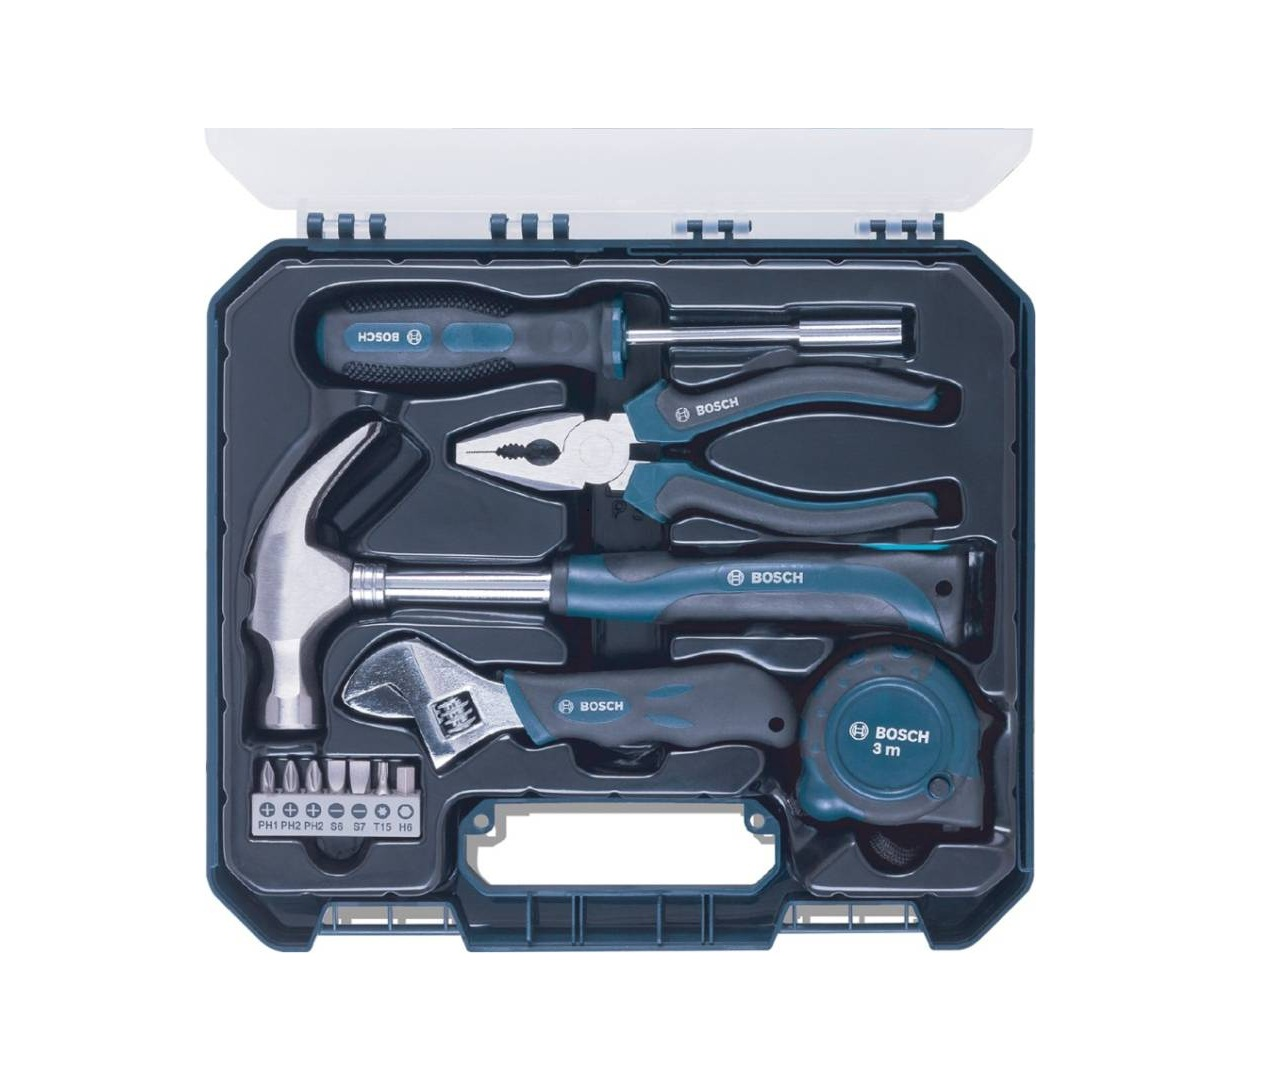 Bosch Hand Tool Kit 26 Tools Best Price in India   Bosch